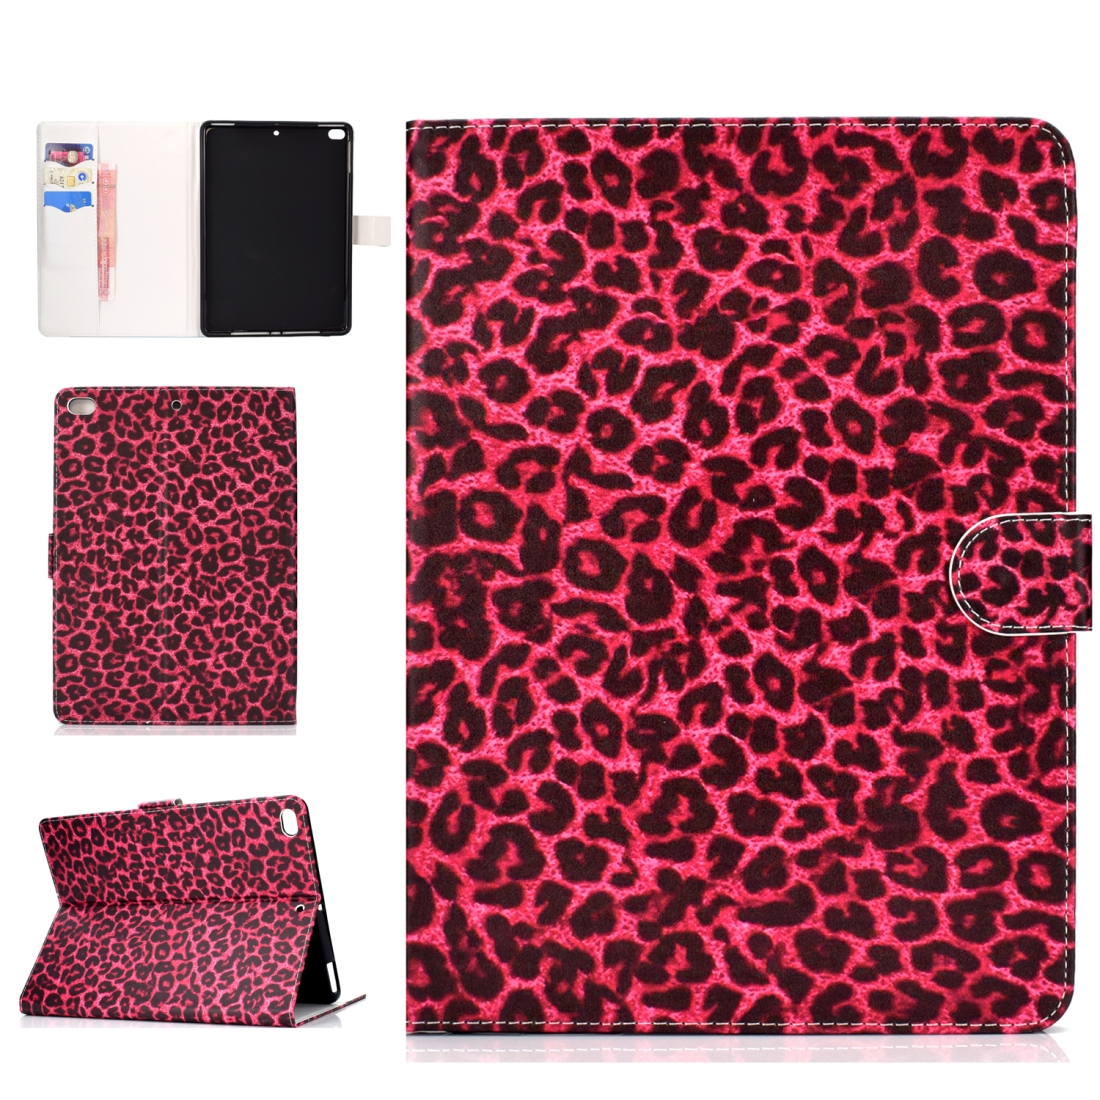 iPad 5th Generation Case Fits iPad 5,6,8, Stylish Leather Design & Auto Sleep Function (Red Leopard)